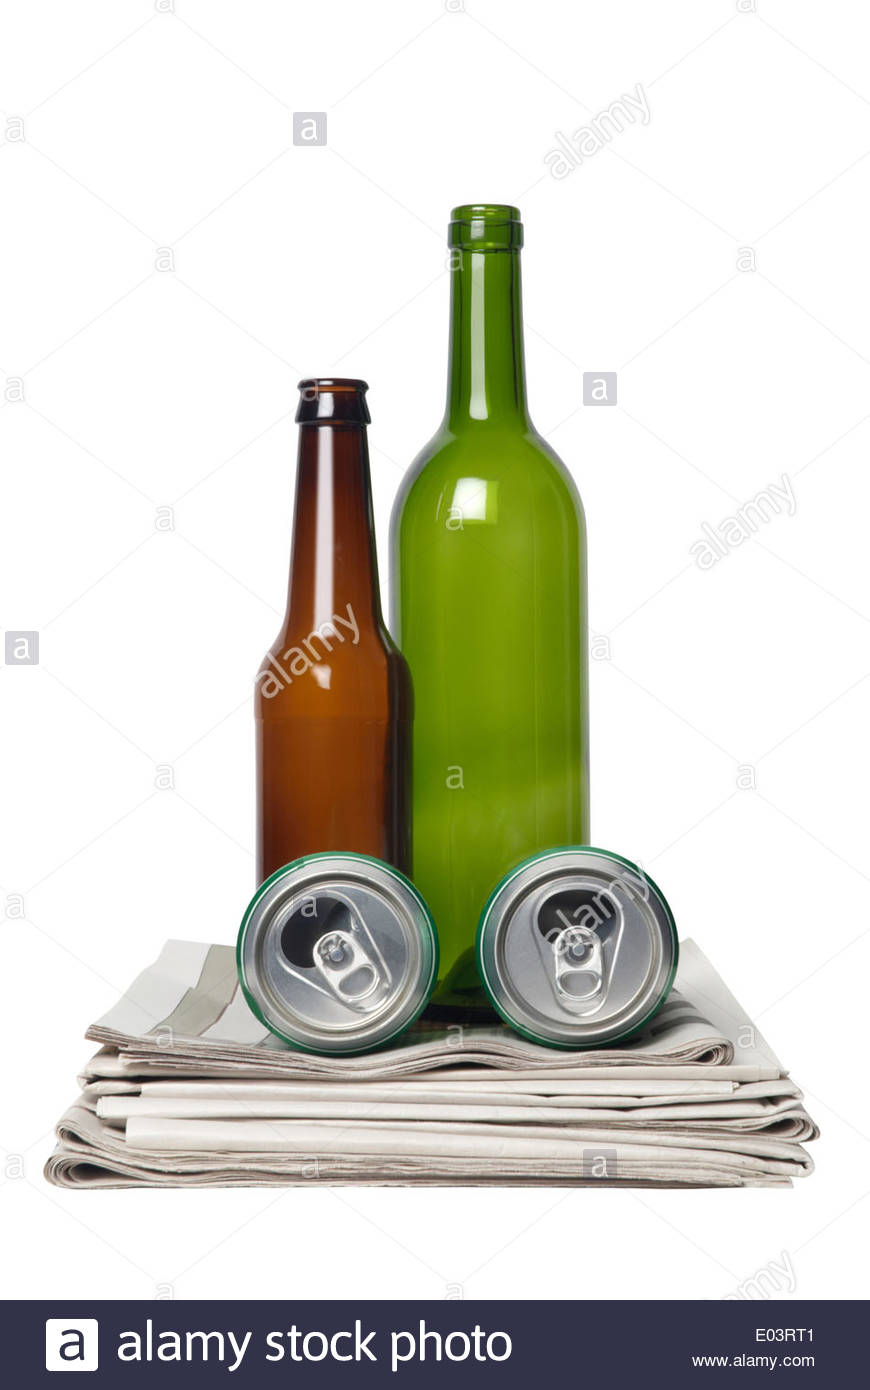 Recycling items glass bottles cans newspapers studio shot - Stock Image